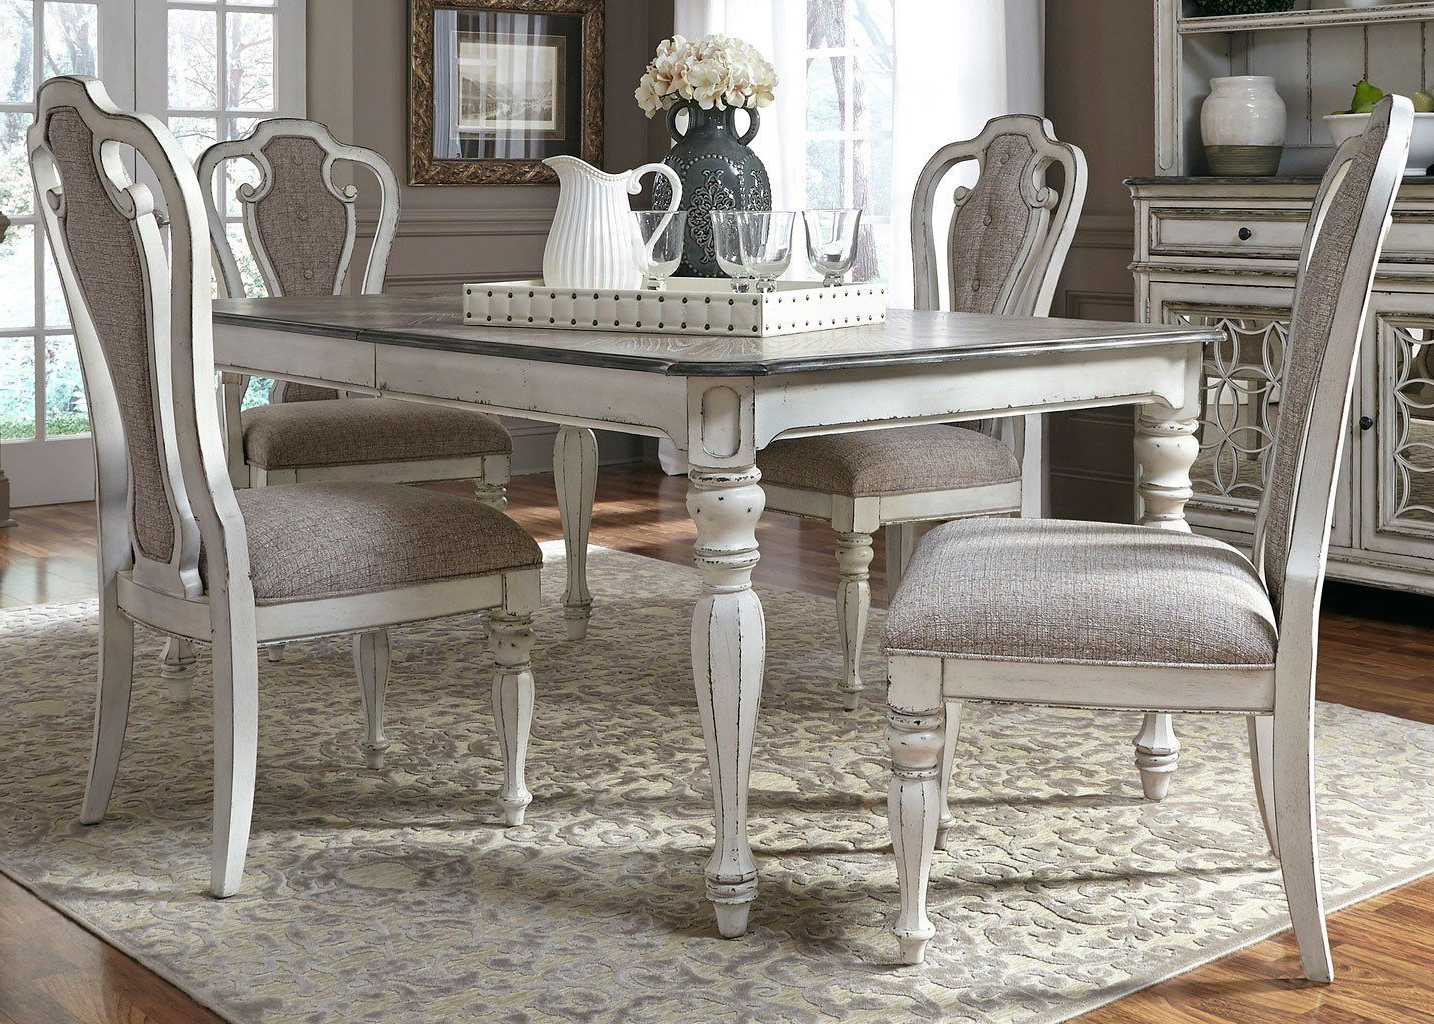 Widely Used Mitzel 3 Piece Dining Sets Regarding Magnolia Manor Dining Room Set W/ 90 Inch Table In (View 19 of 25)